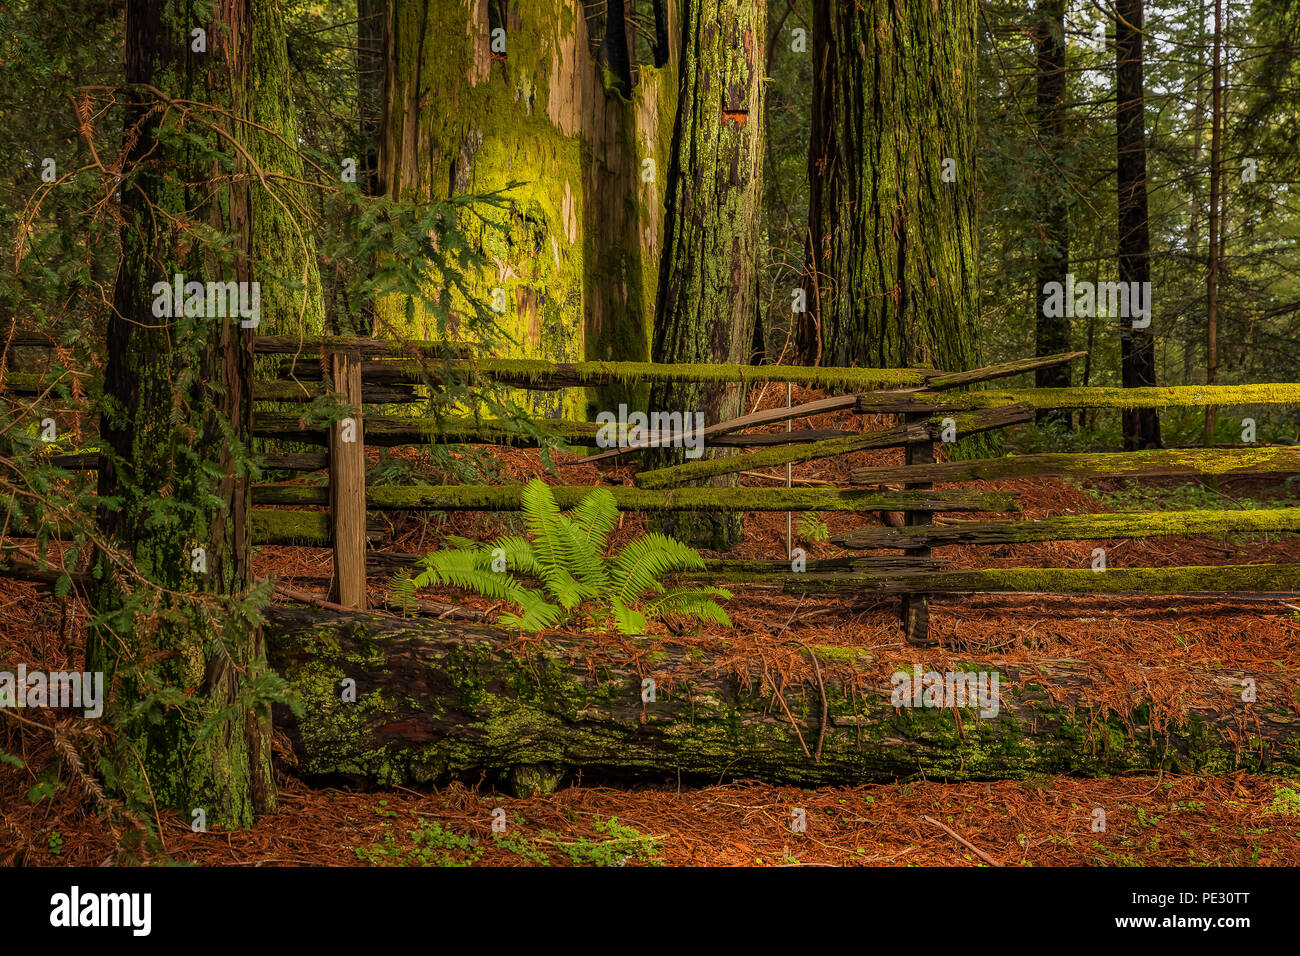 Mossy tree trunk and fern by a fence amongst giant sequoia trees the Redwoods Forest in California - Stock Image